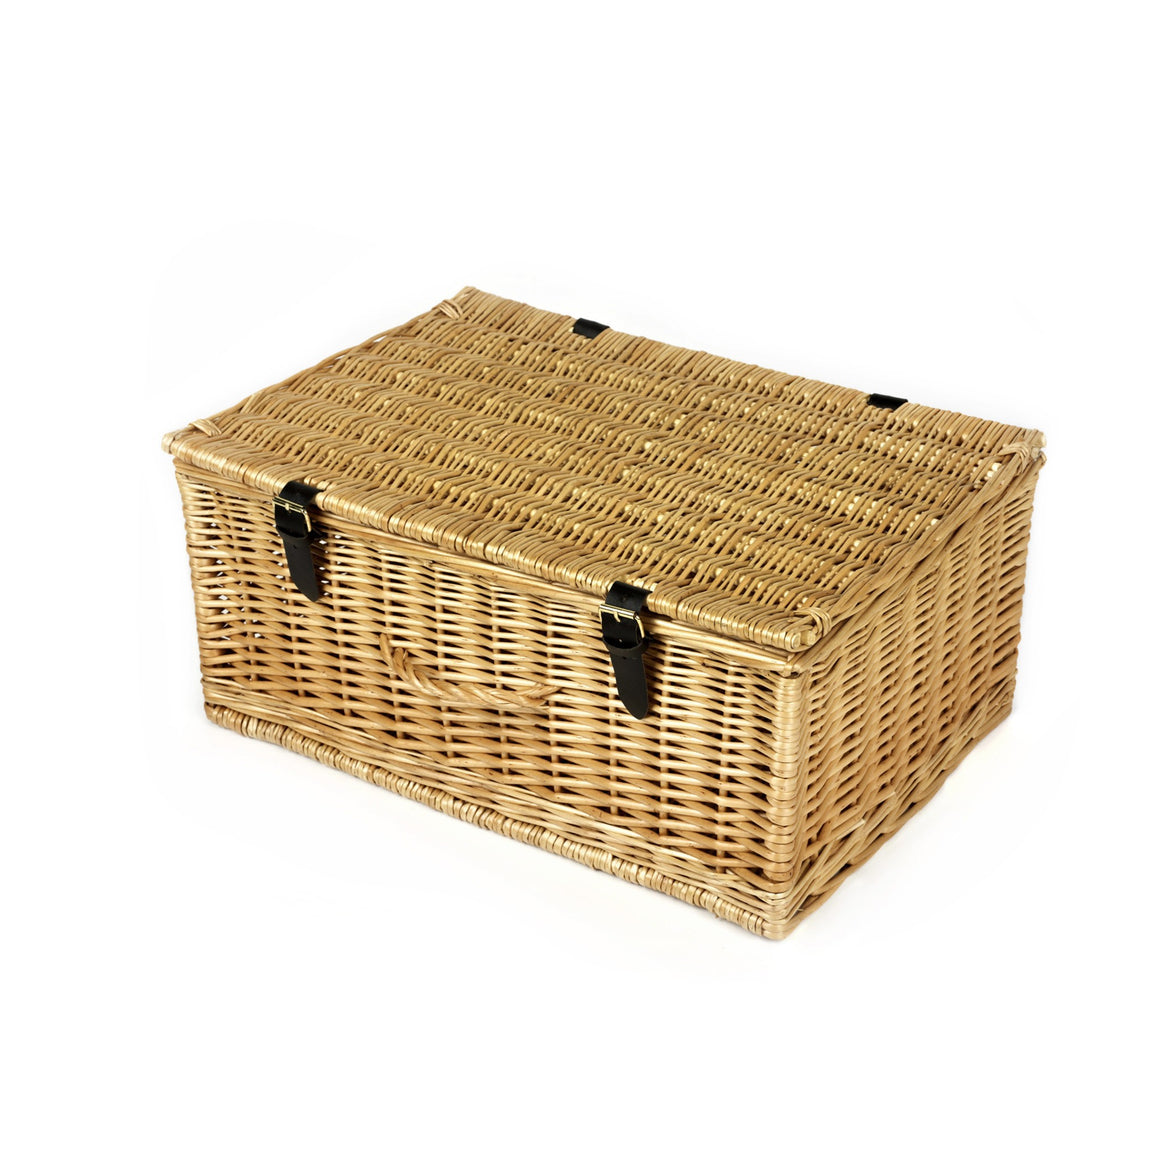 Empty Wicker Hamper - Extra Large - 51cm x 34cm x 23cm